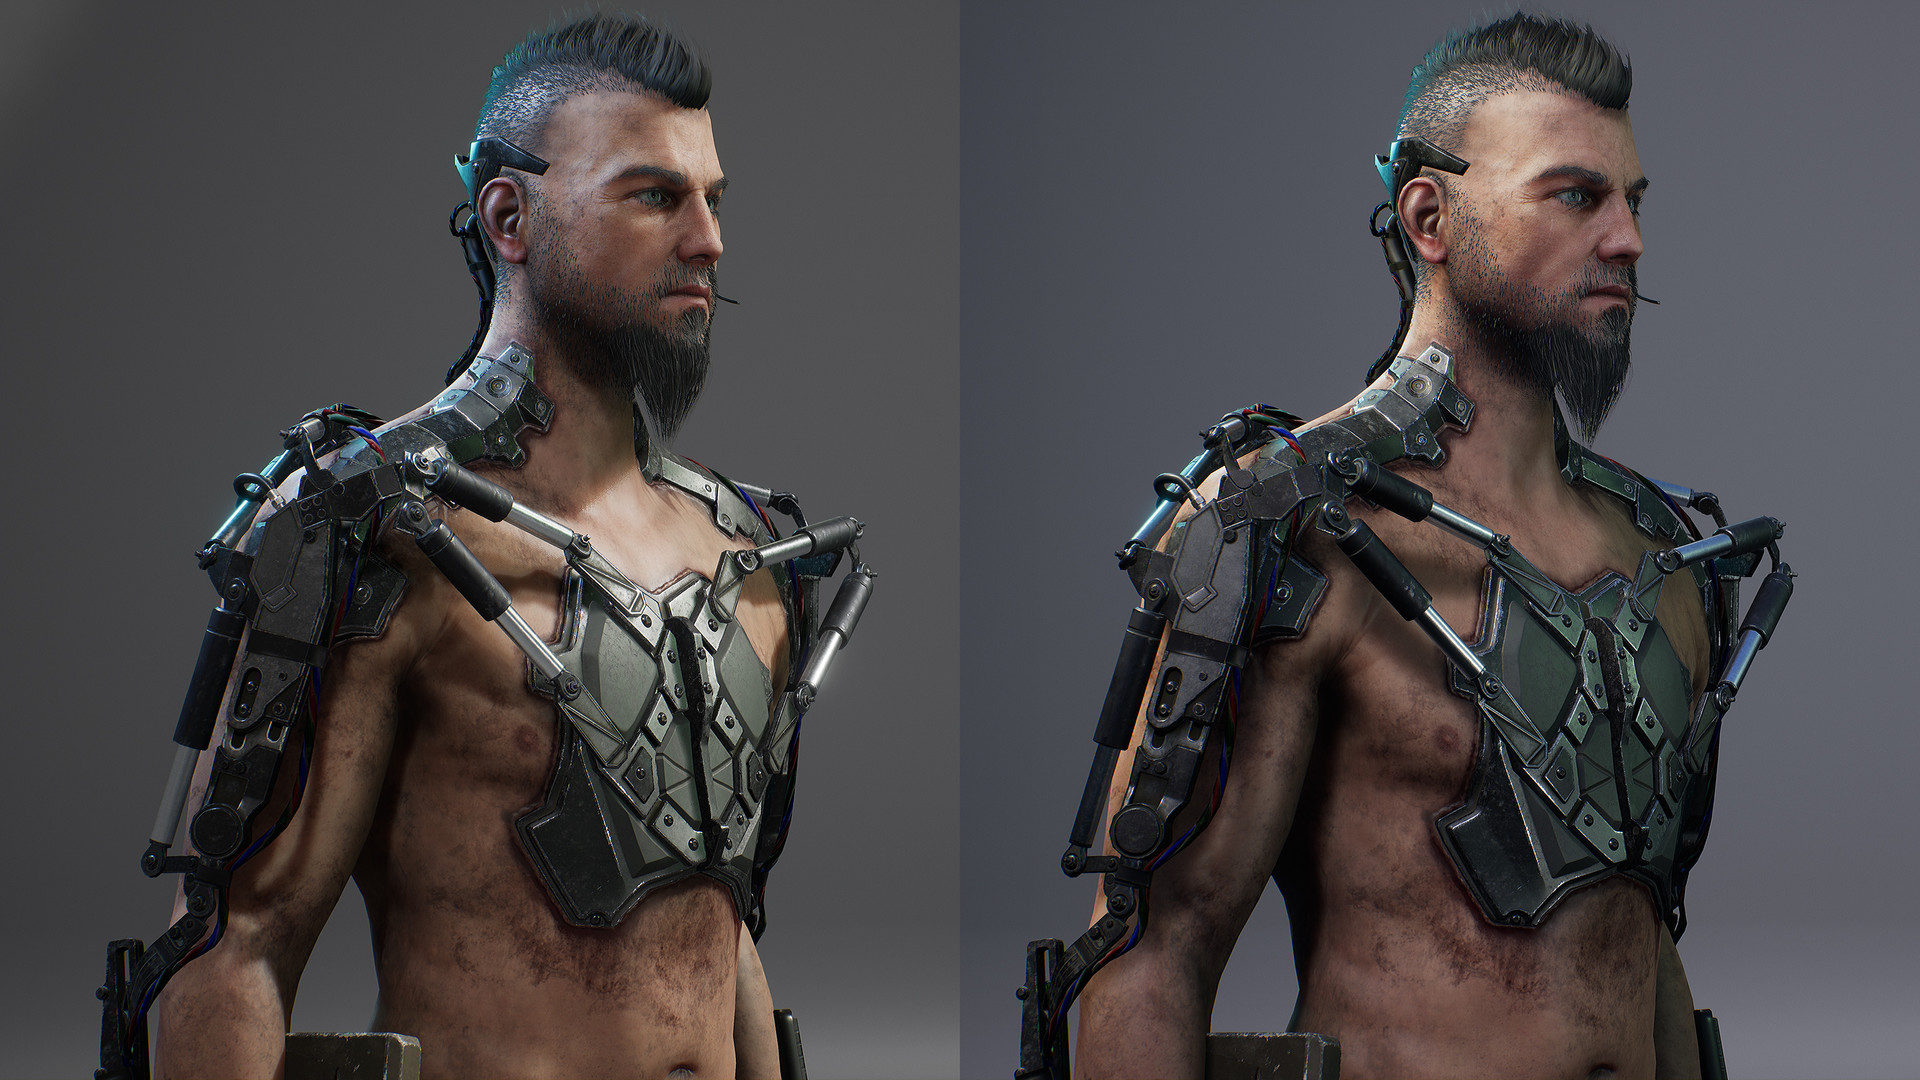 ArtStation - Realtime Character in Unreal Engine 4 for free, Manu Lopez